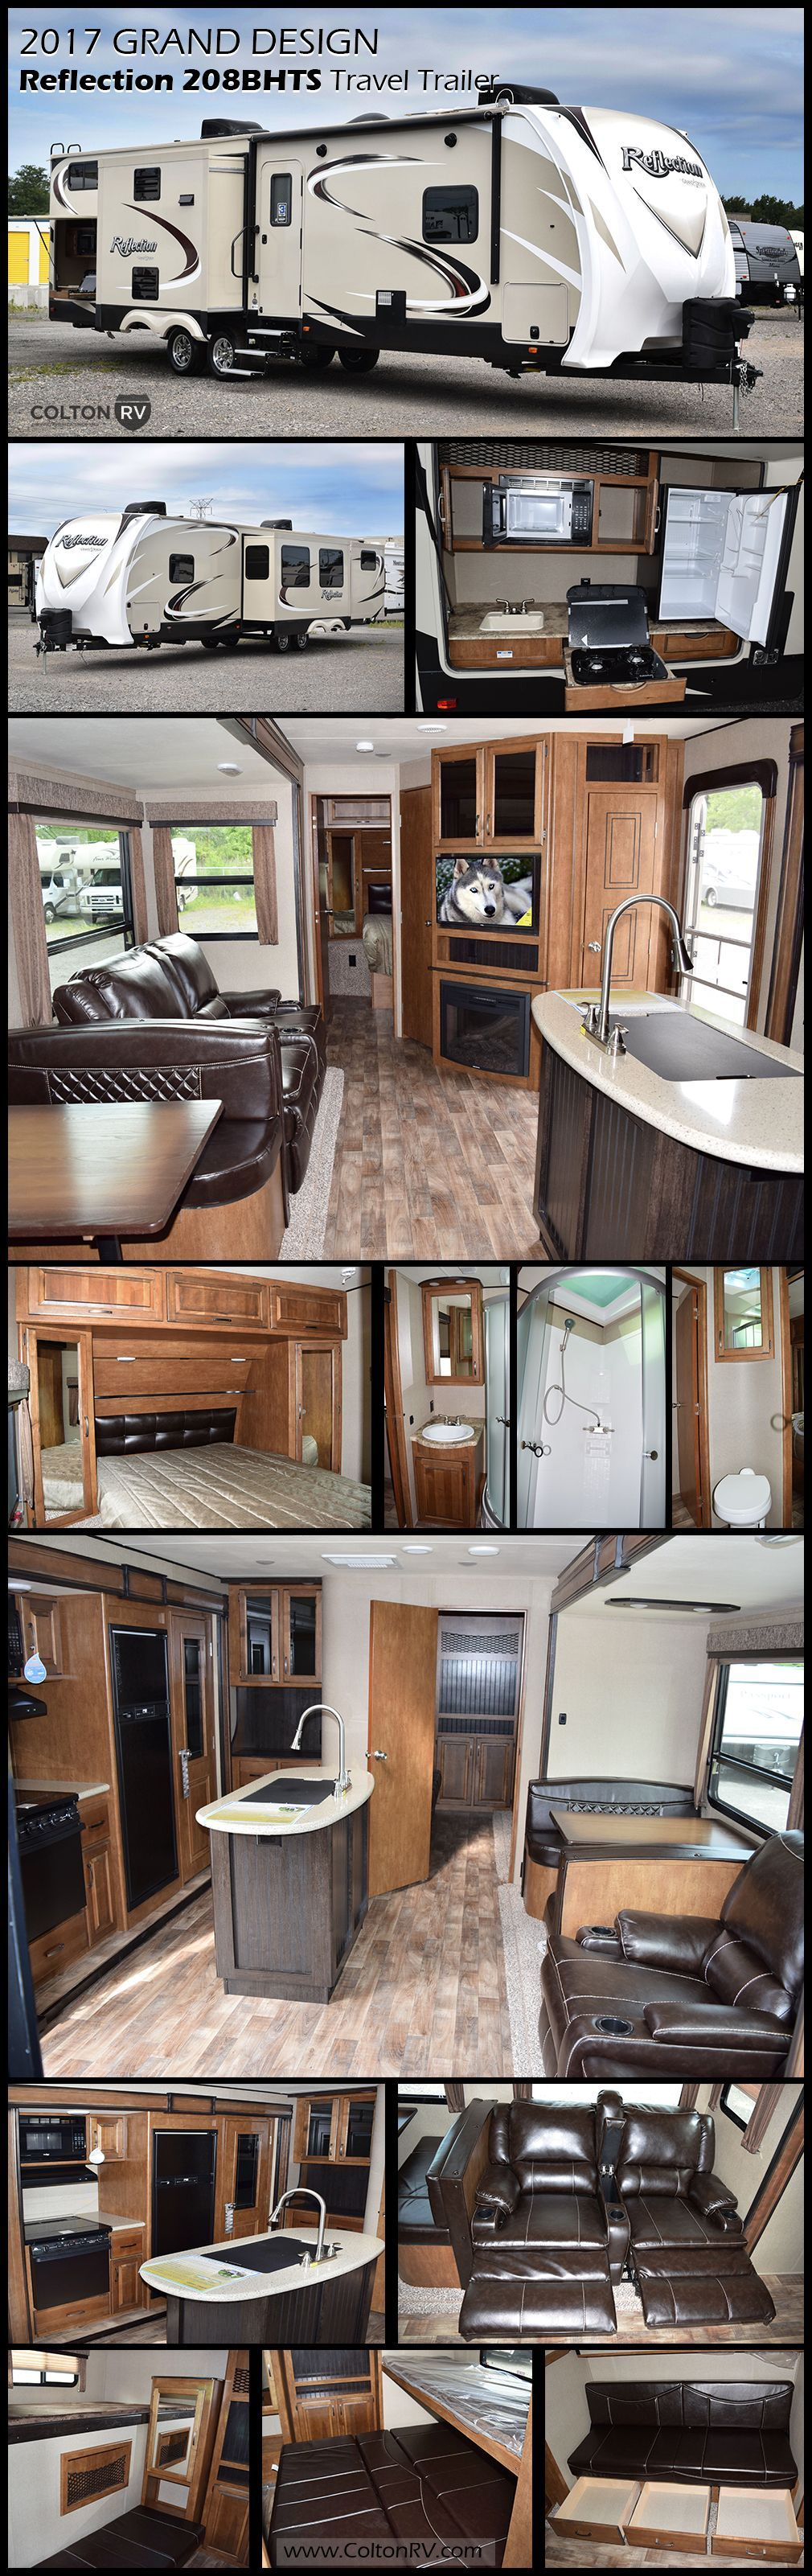 24 Best Grand Design Rv Camping Bunkhouse Travel Trailer